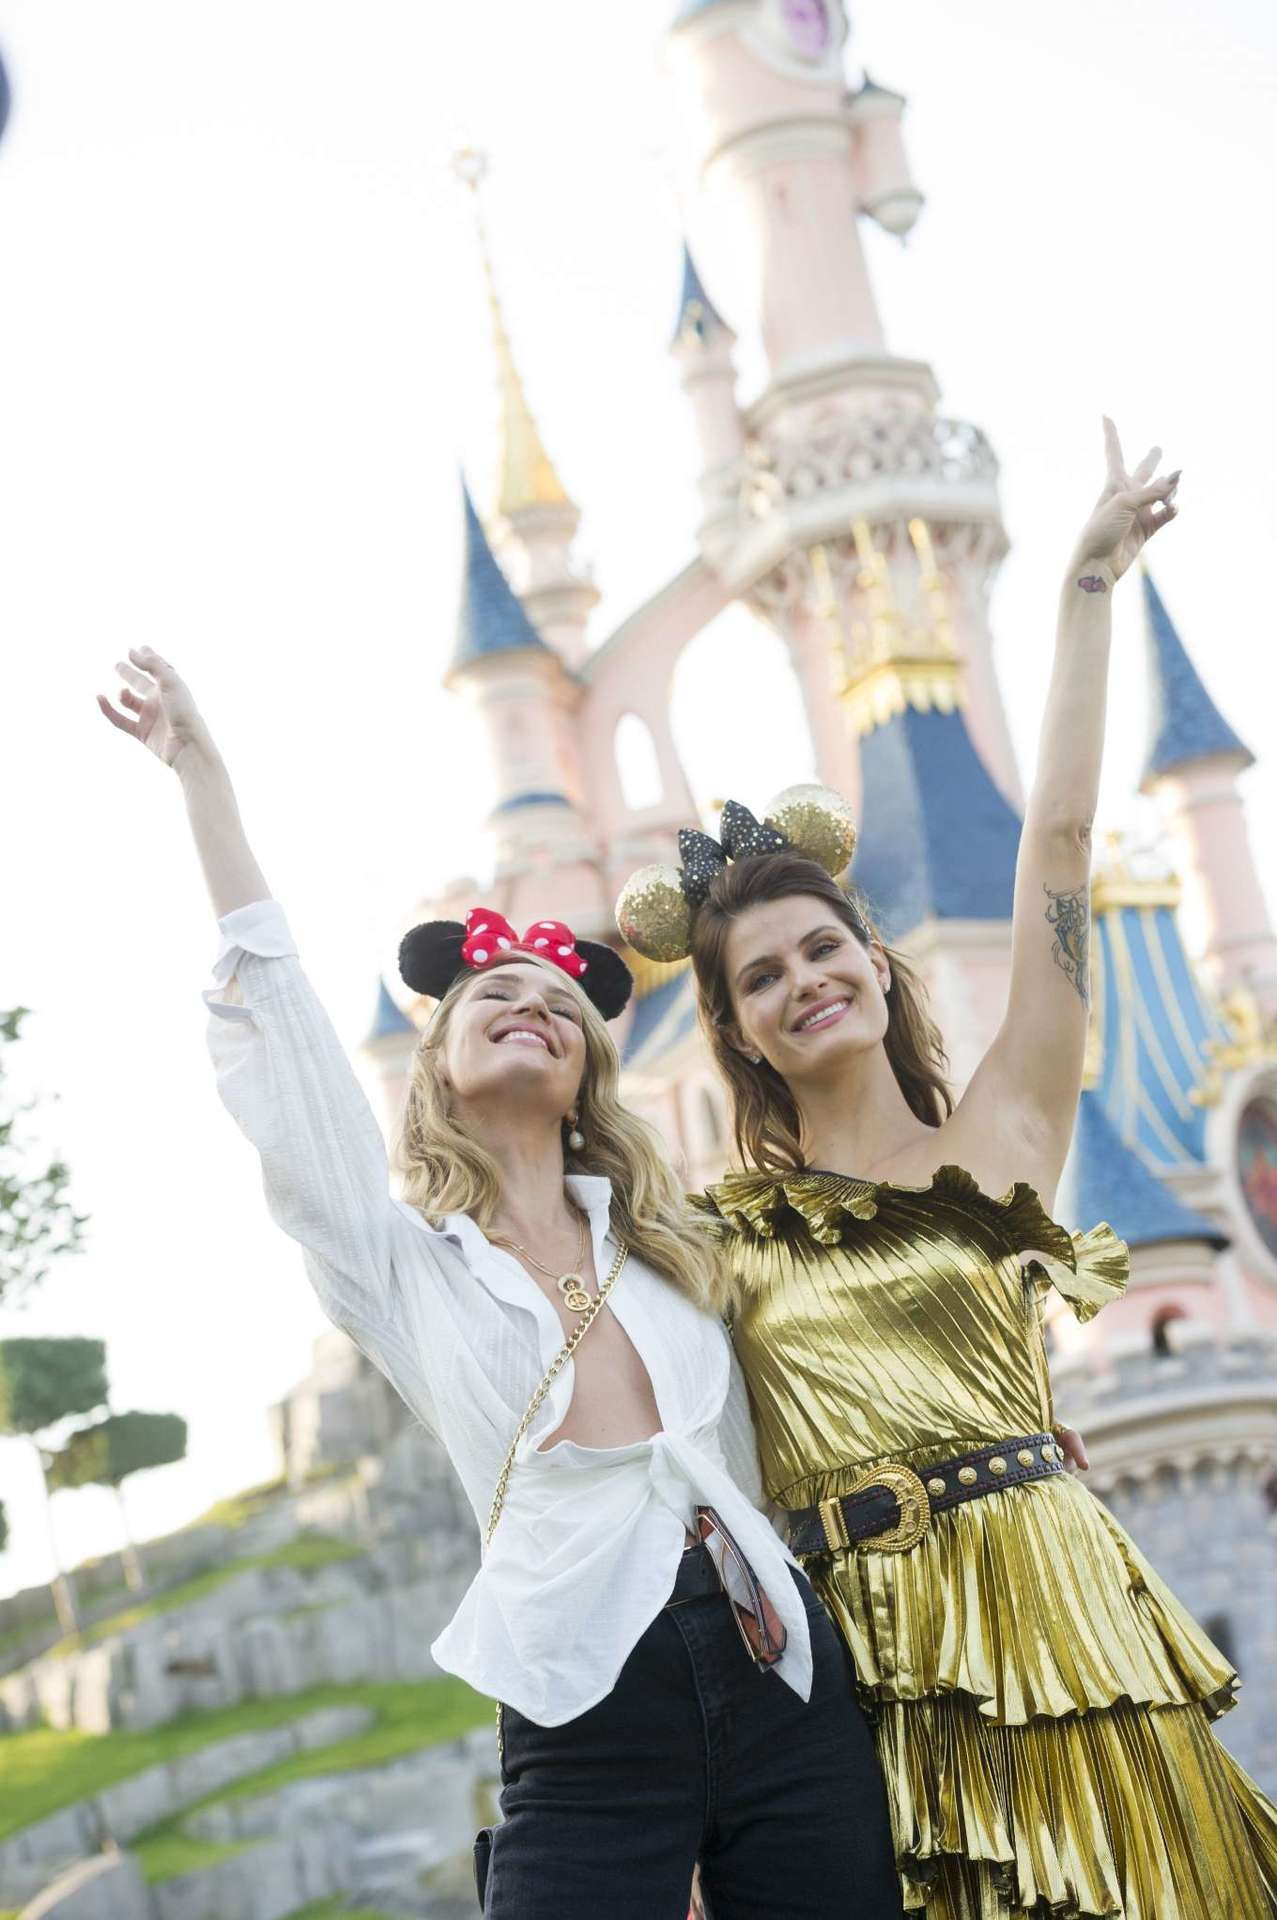 Candice Swanepoel and Isabeli Fontana at Exclusive Party at Disneyland in Paris